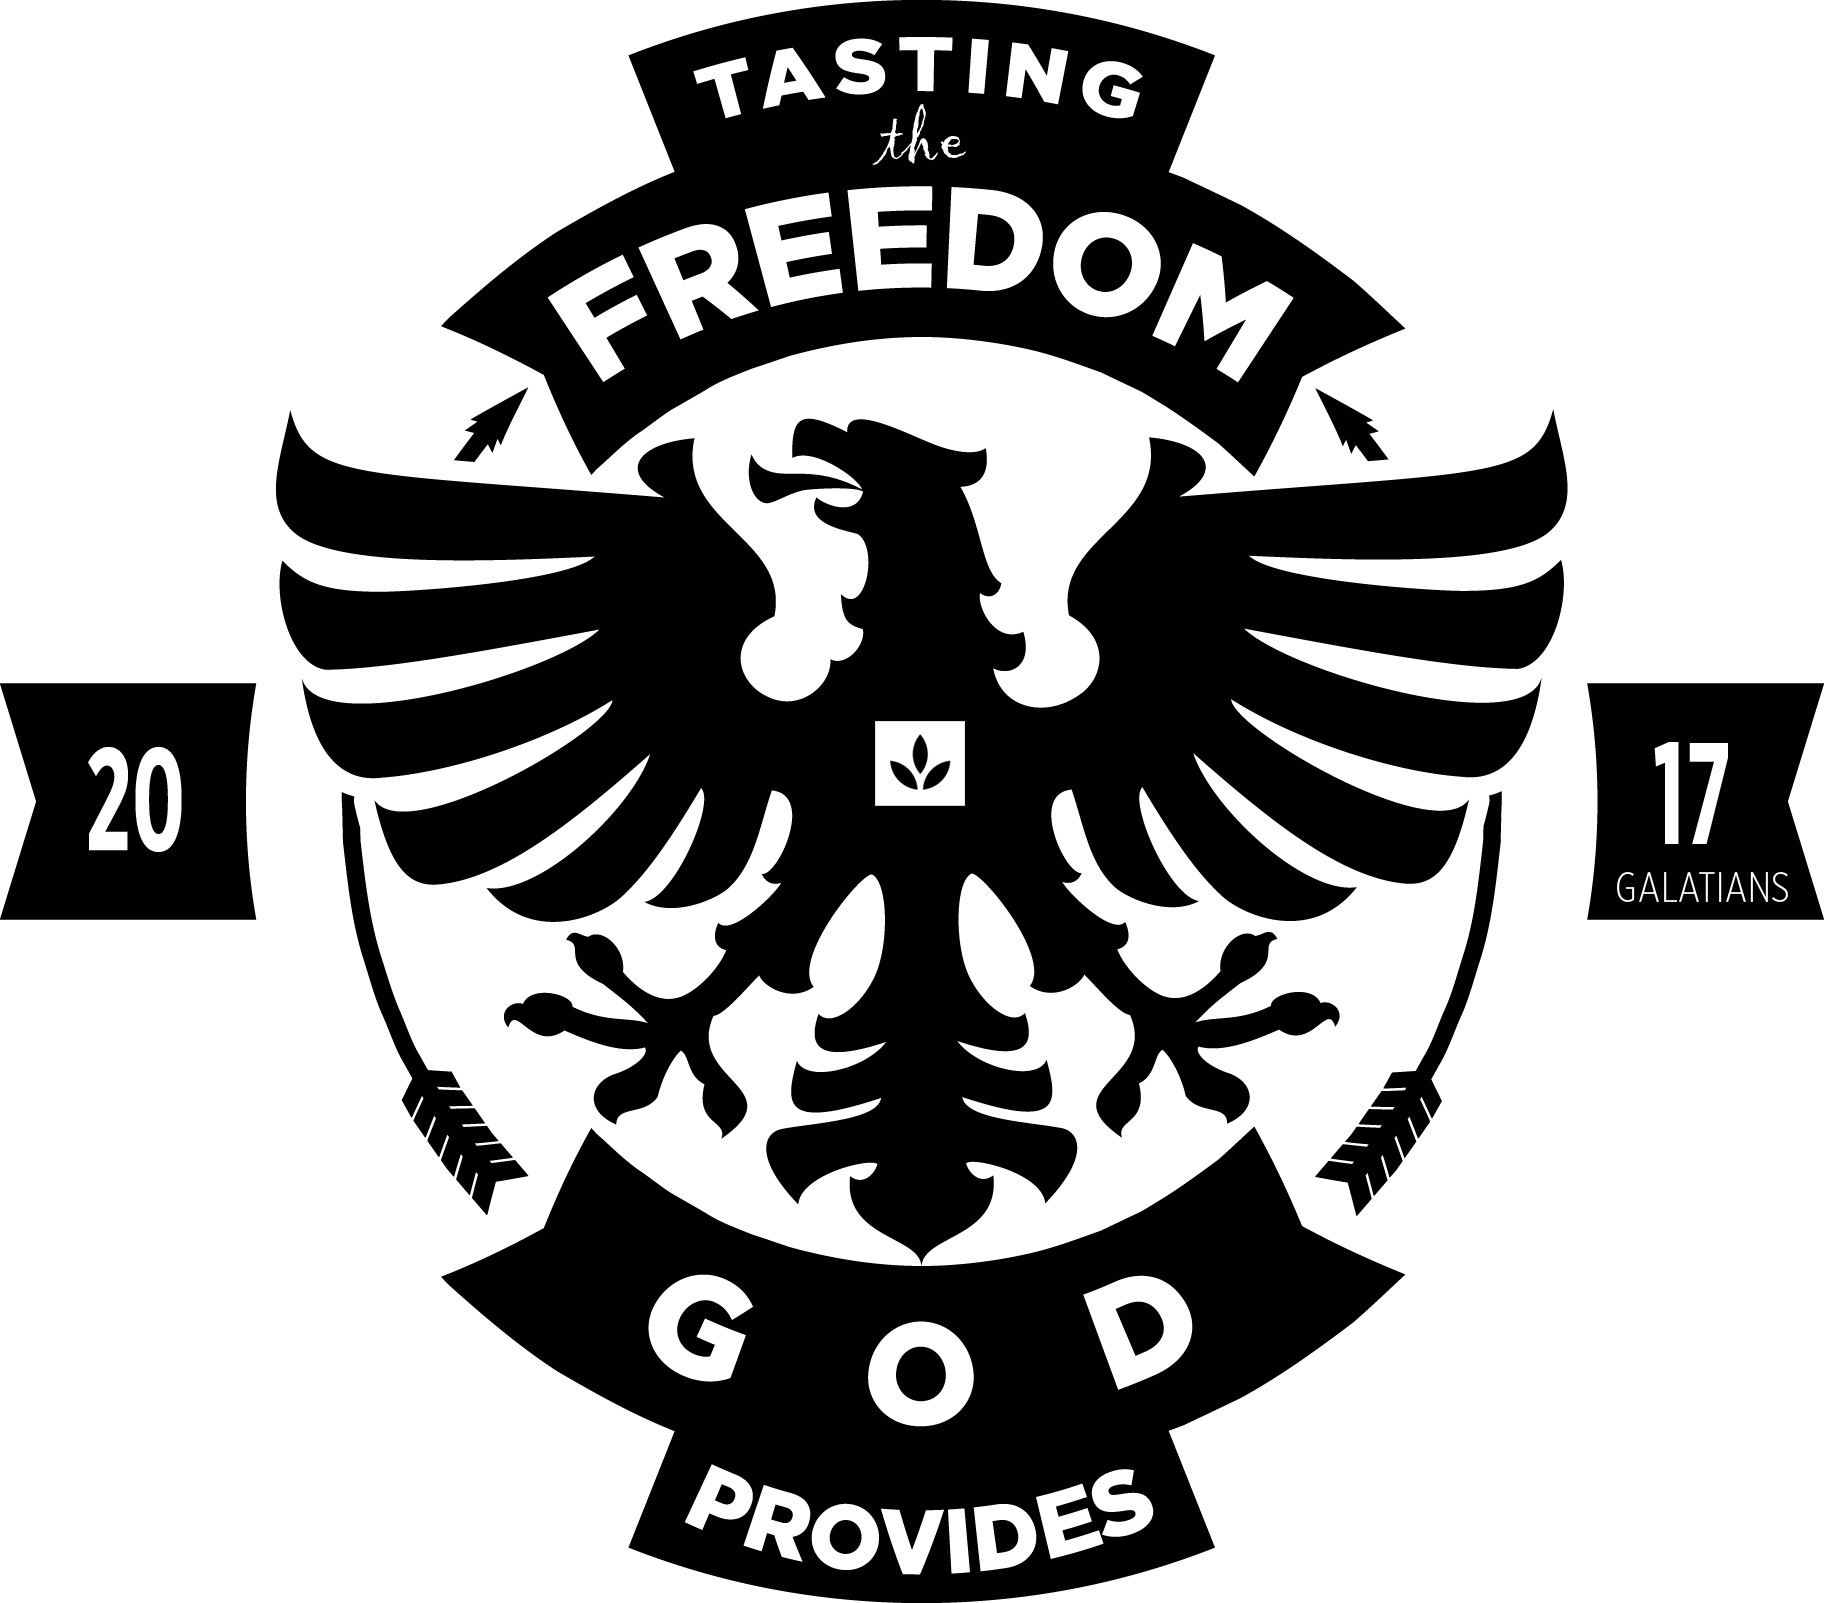 20170103-Galatians-Tasting the Freedom God Provides